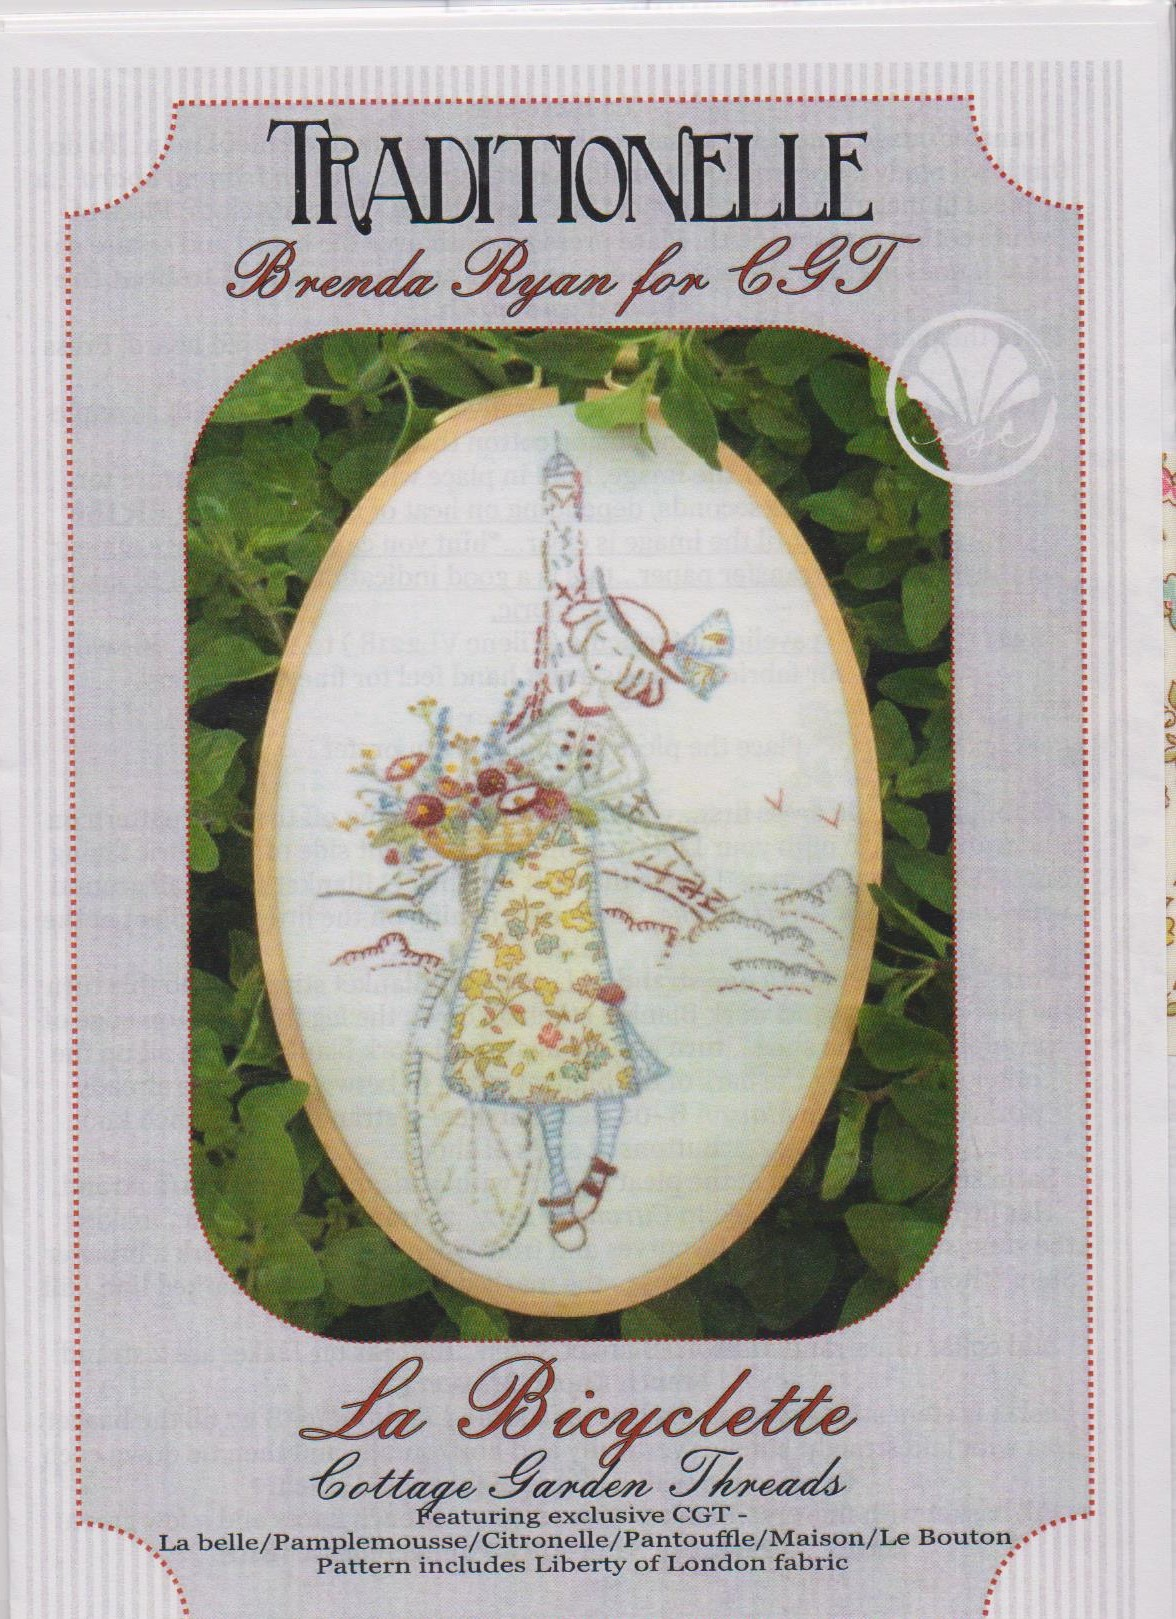 La Bicyclette Embroidery pattern by Brenda Ryan for Cottage Garden Threads